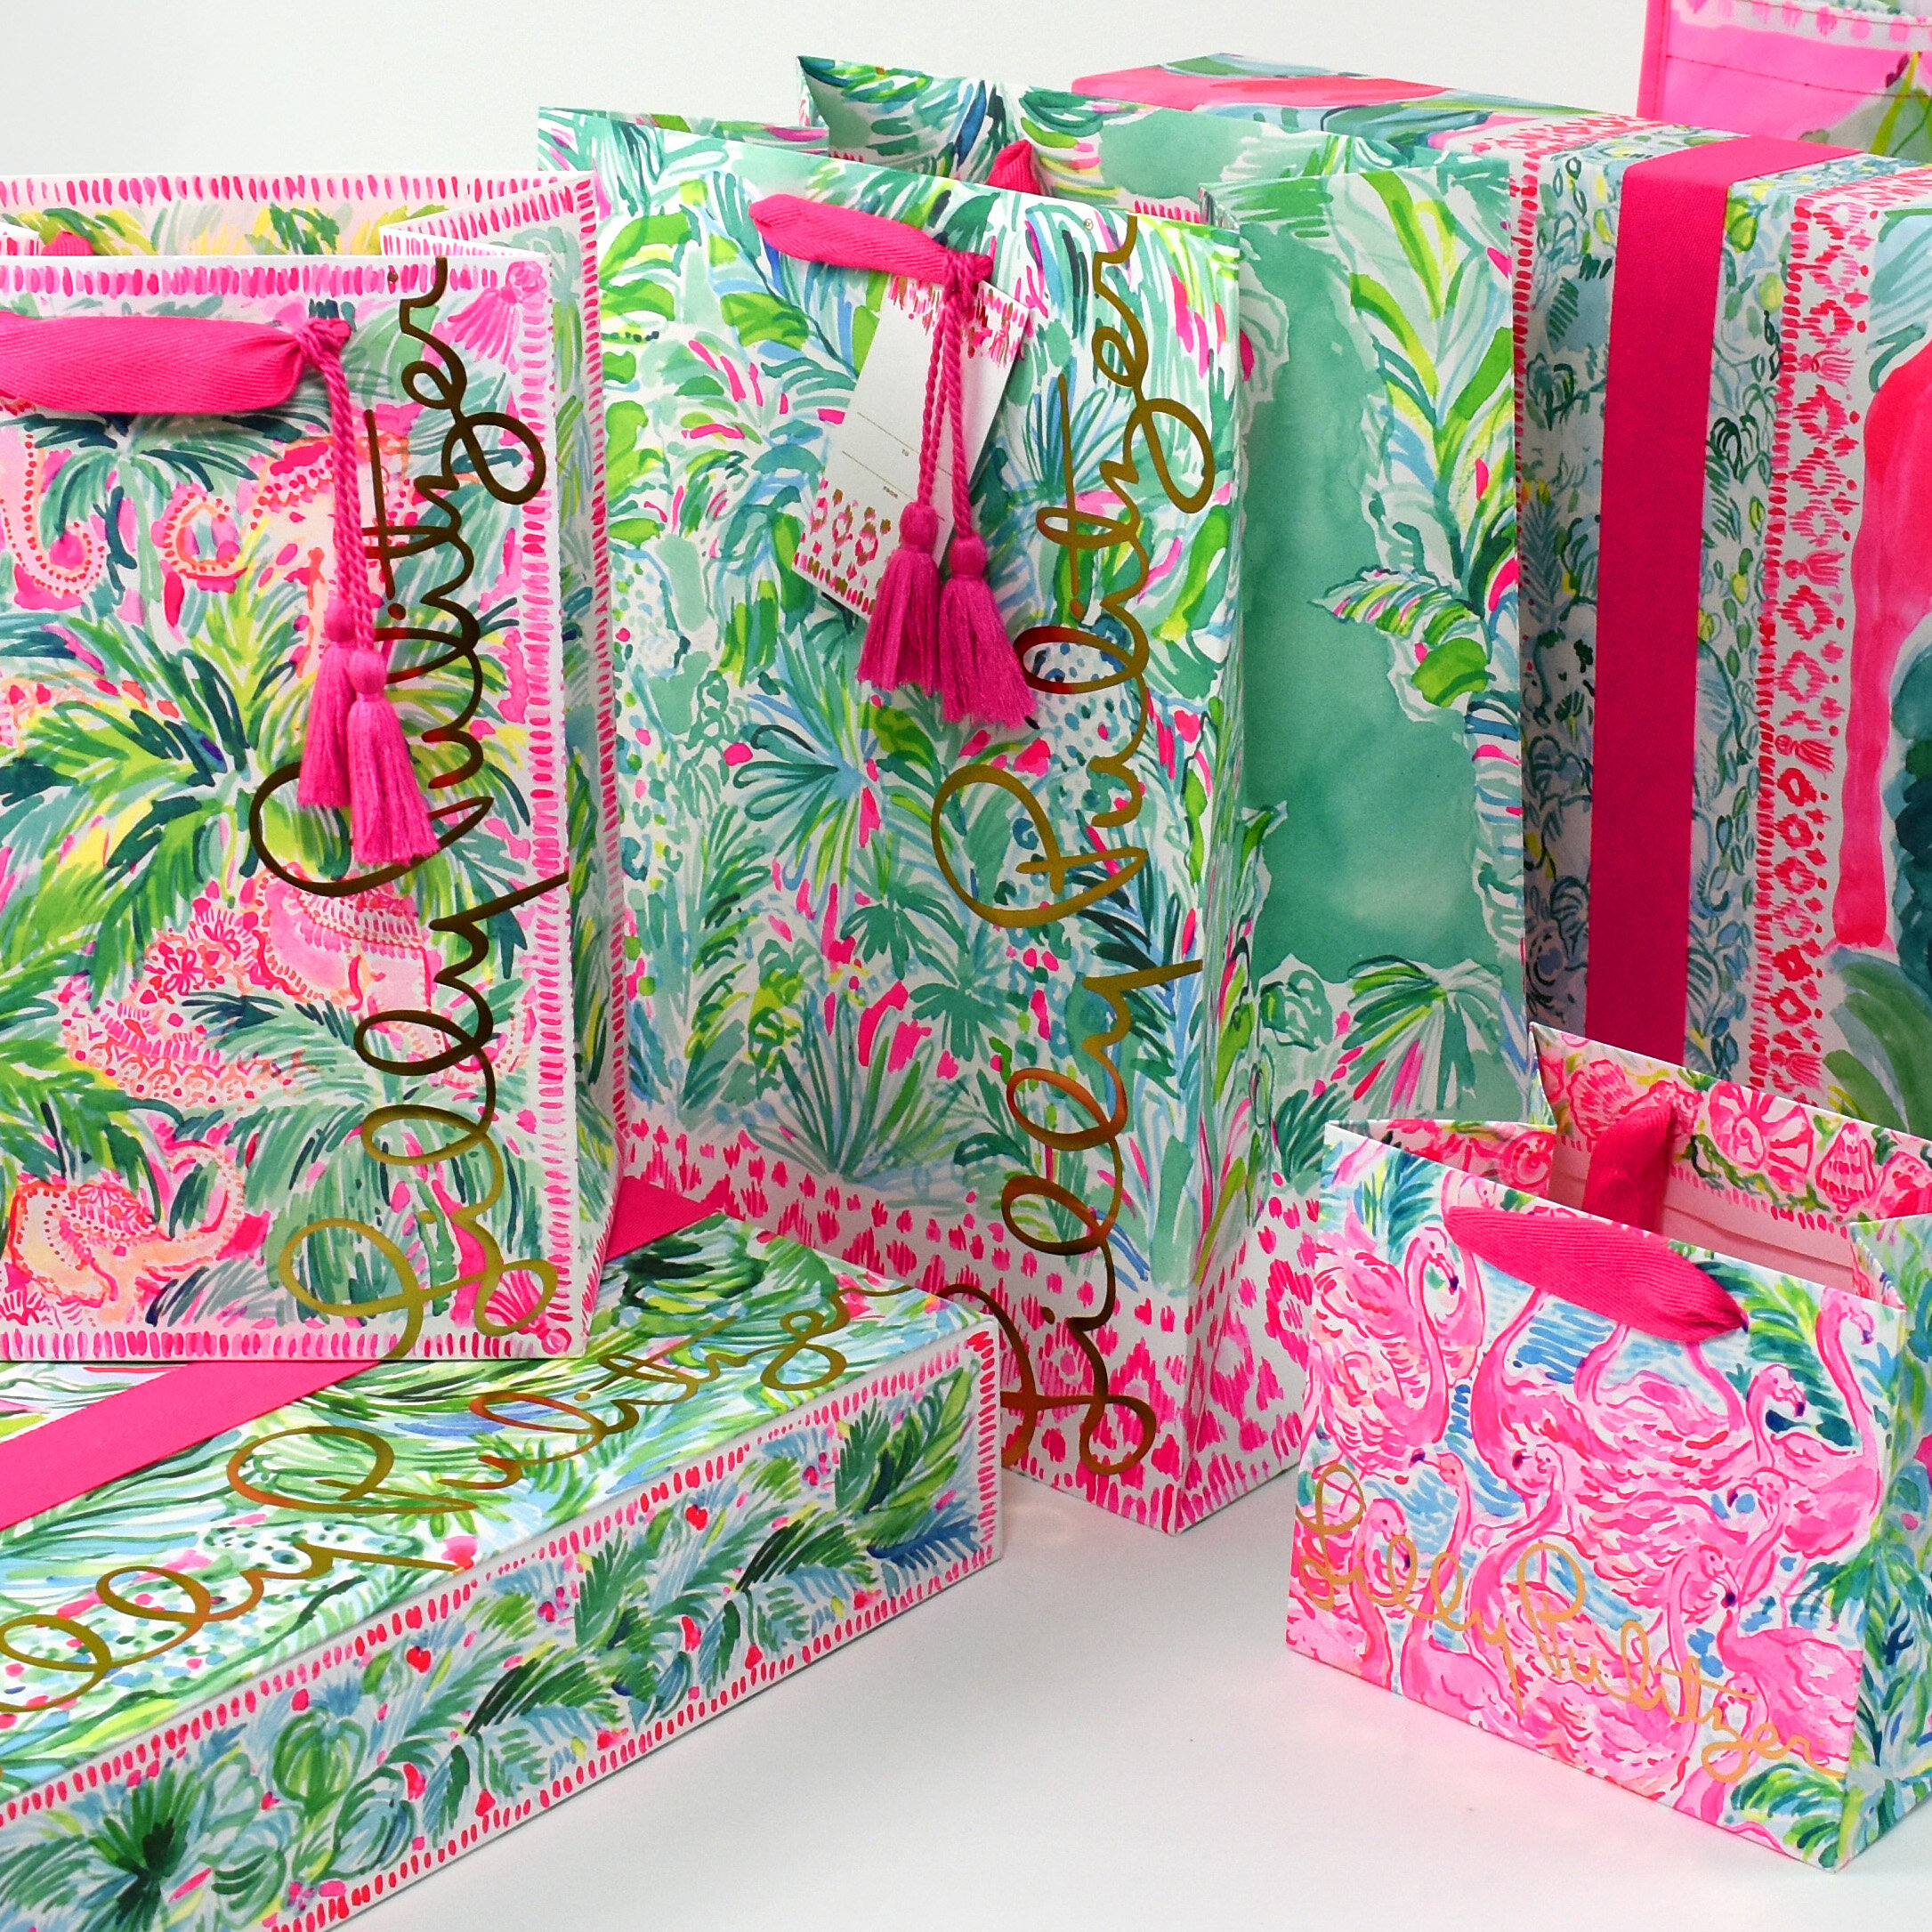 lilly-collection-croped.jpg